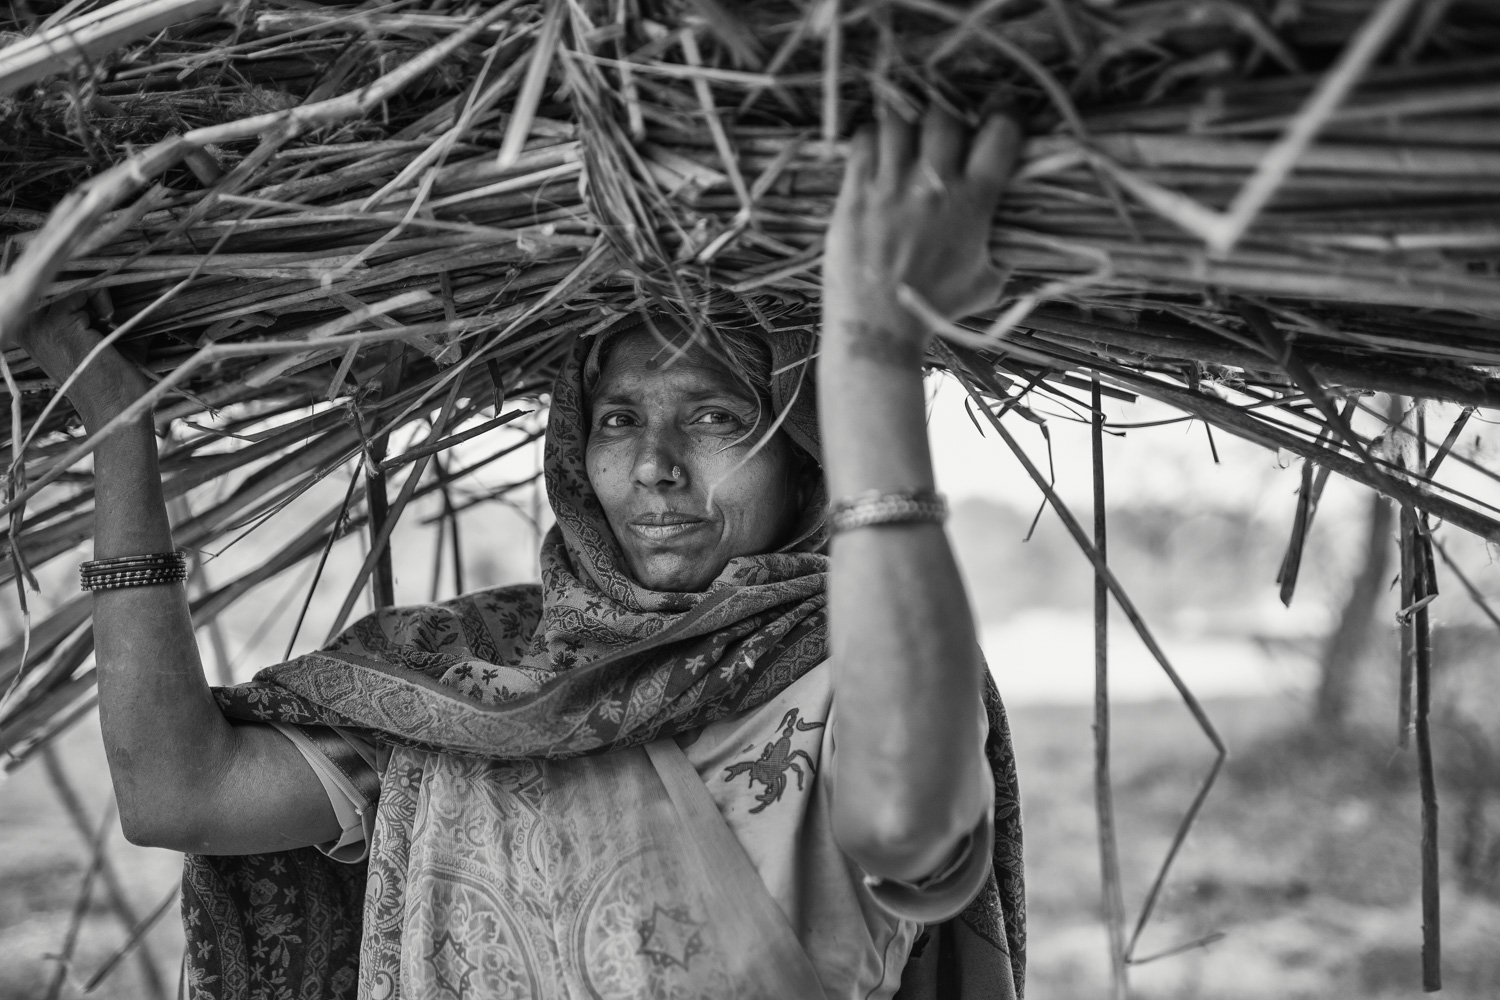 A woman carrying straw through Lumbini (Nepal) Copyright: Daniel Hofmann